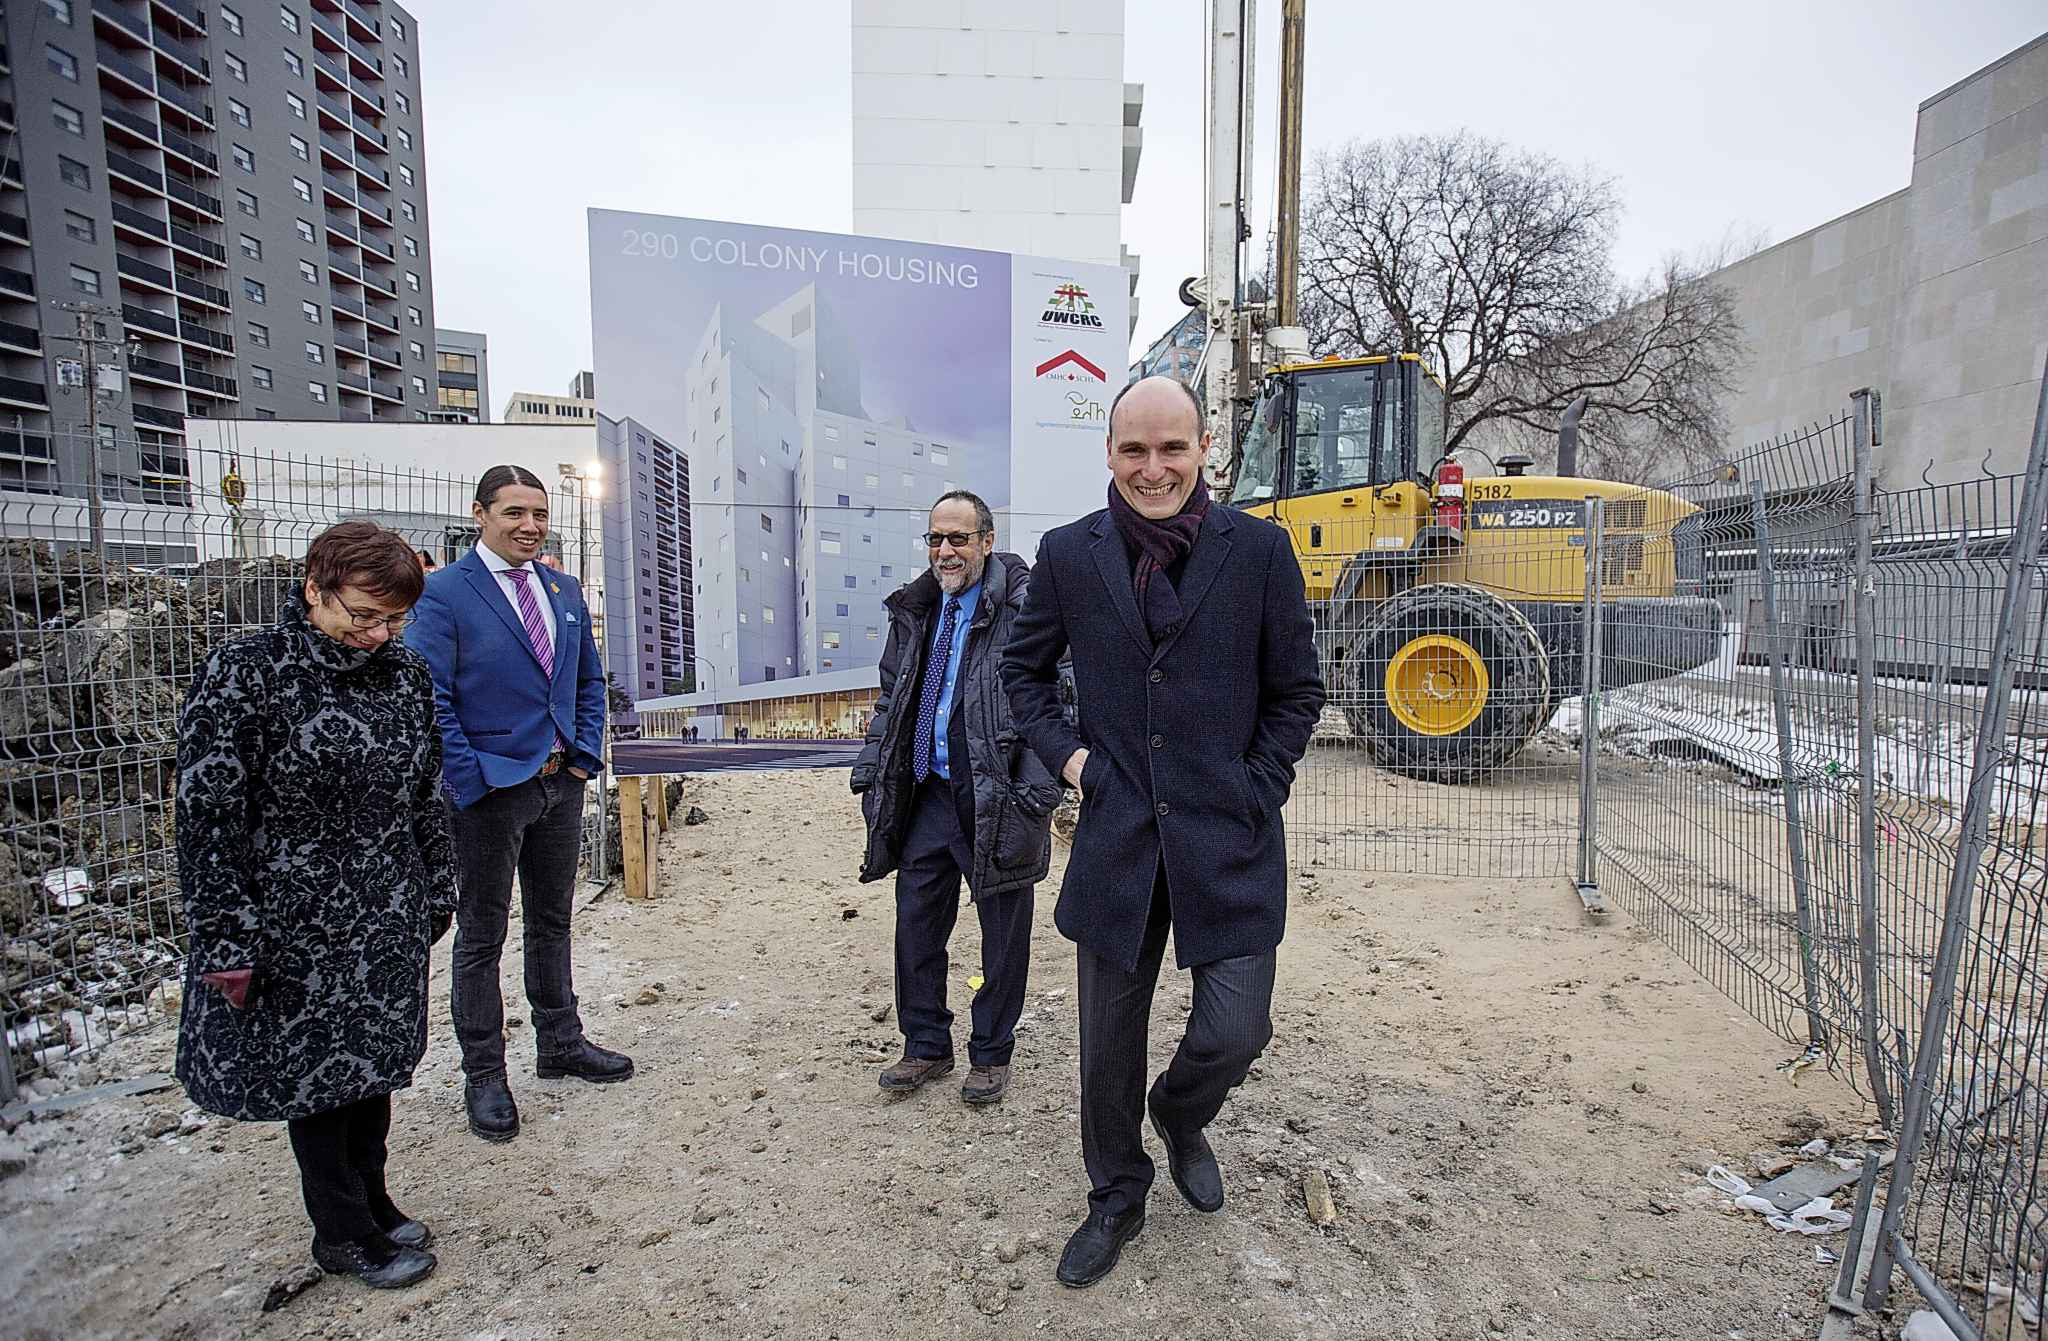 Jean-Yves Duclos (right), minister responsible for the Canada Mortgage and Housing Corp., and Annette Trimbee, vice-chancellor of the University of Winnipeg, Sherman Kreiner, head of the U of W Community Renewal Corp. and Robert-Falcon Oullette, MP for Winnipeg Centre, at the site of the $26-million housing project west of the Winnipeg Art Gallery Wednesday.